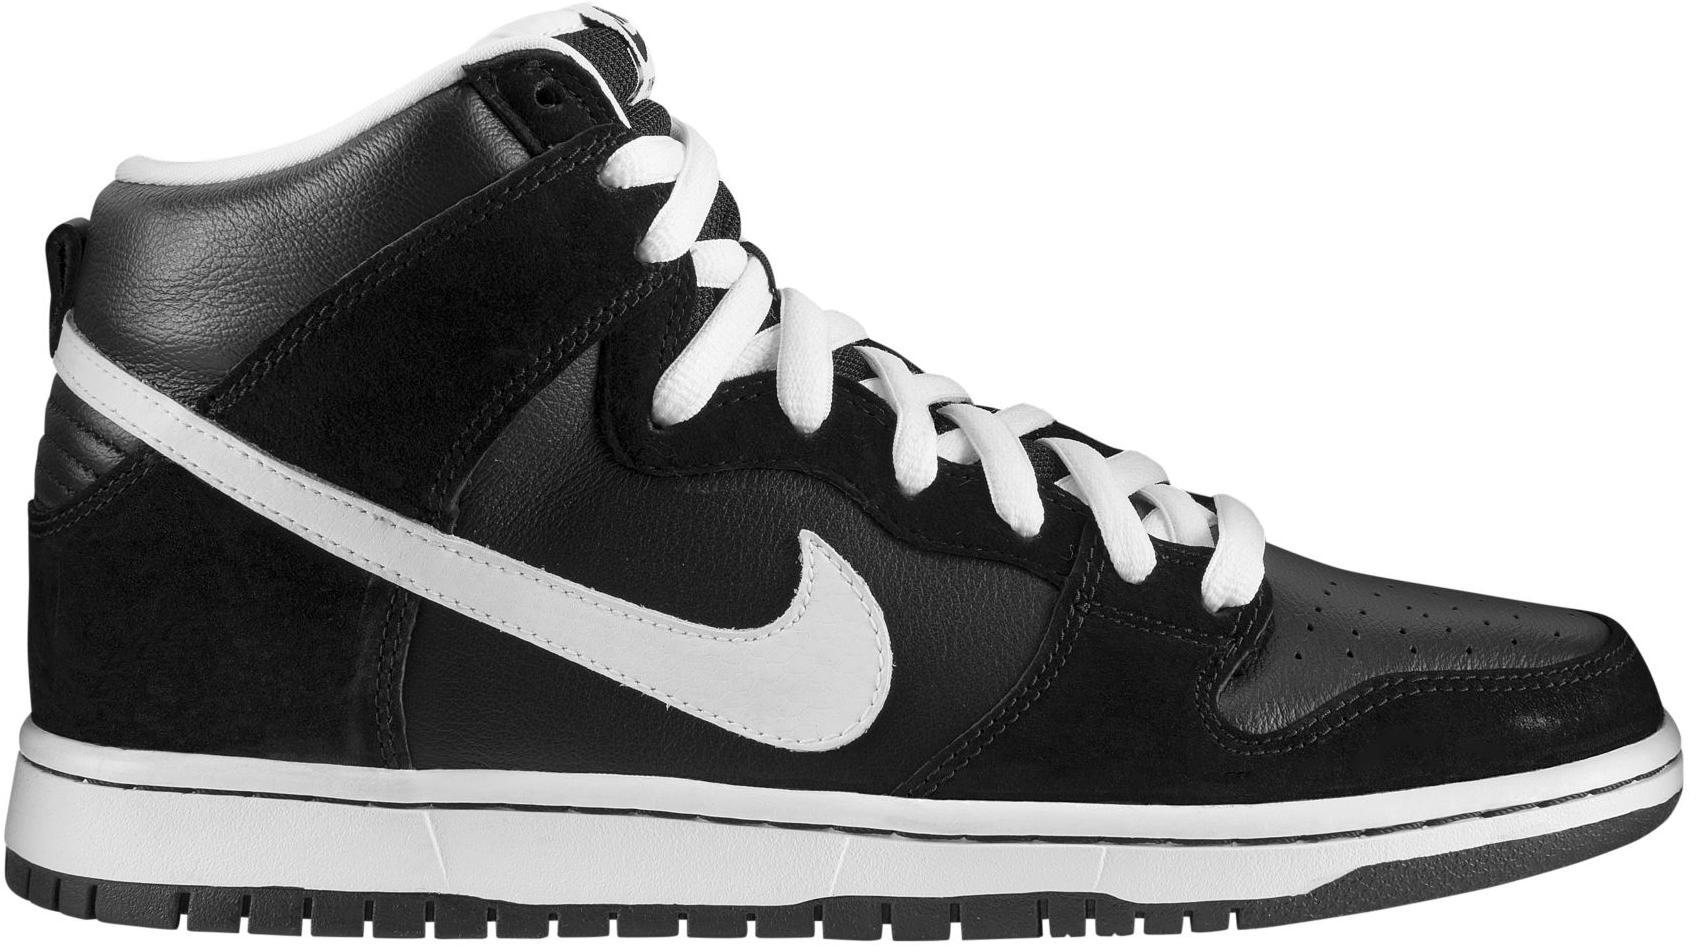 156059e8f83d56 authentic nike dunk sb high venom black 44383 05a1c